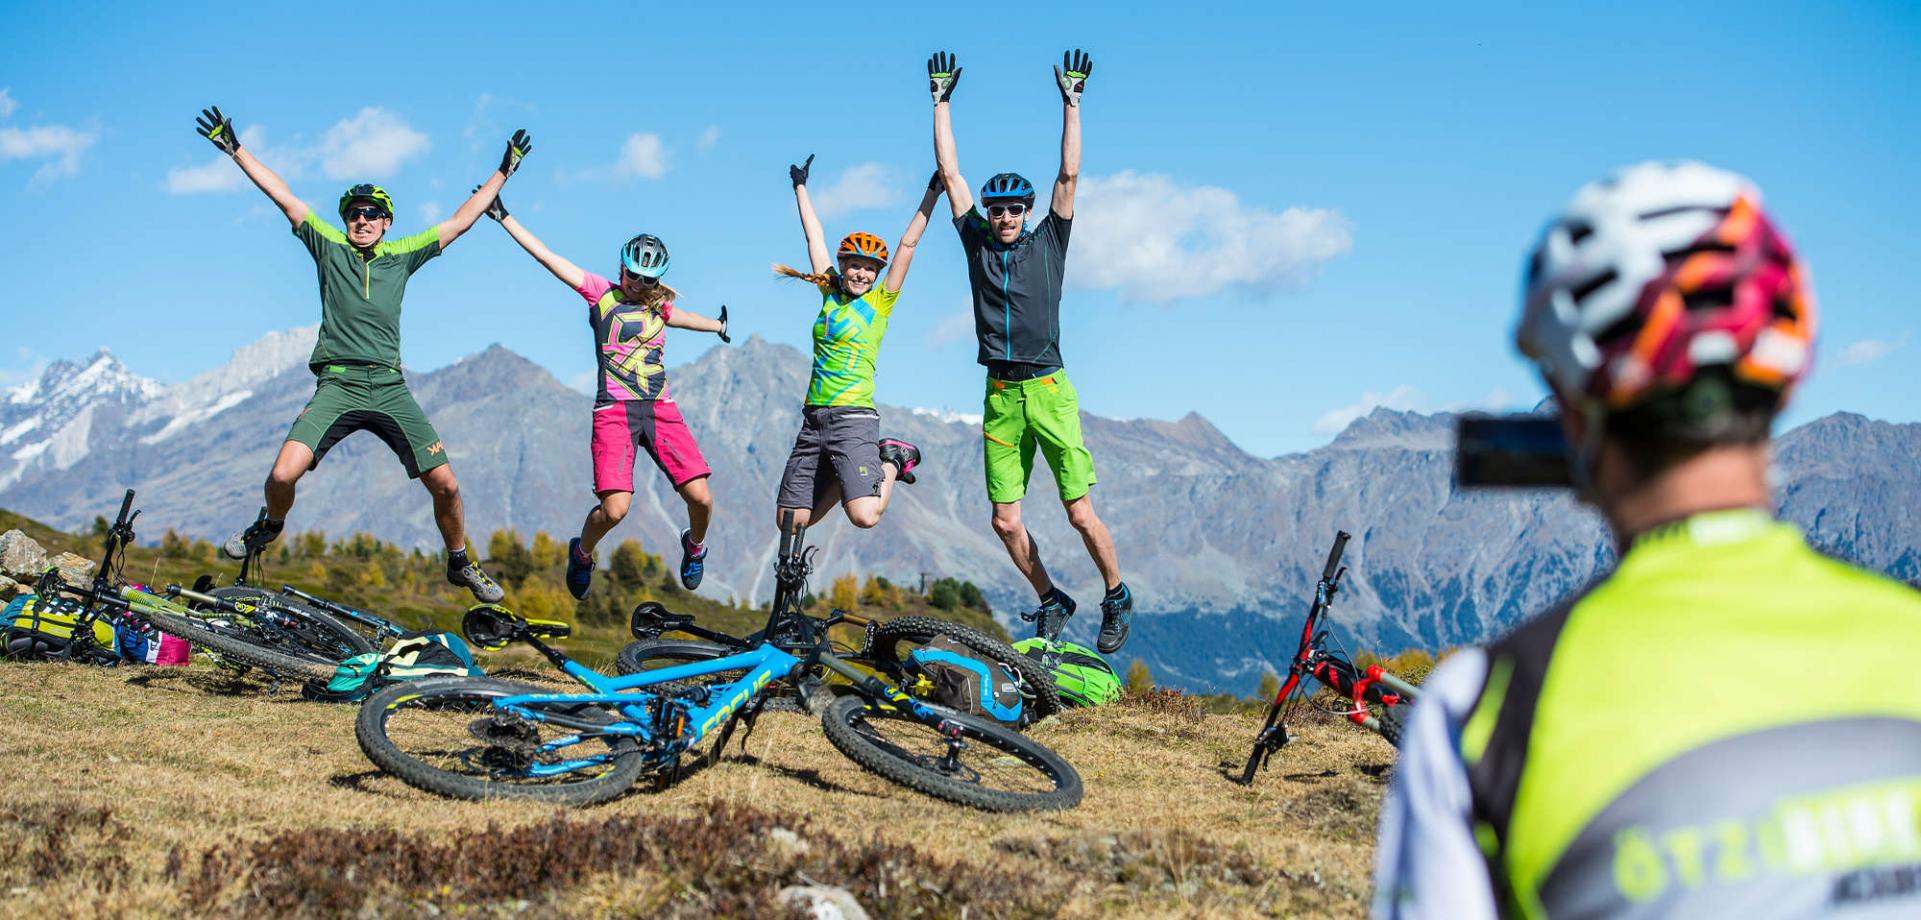 Sun, flow trails – Ötzi Bike Academy!